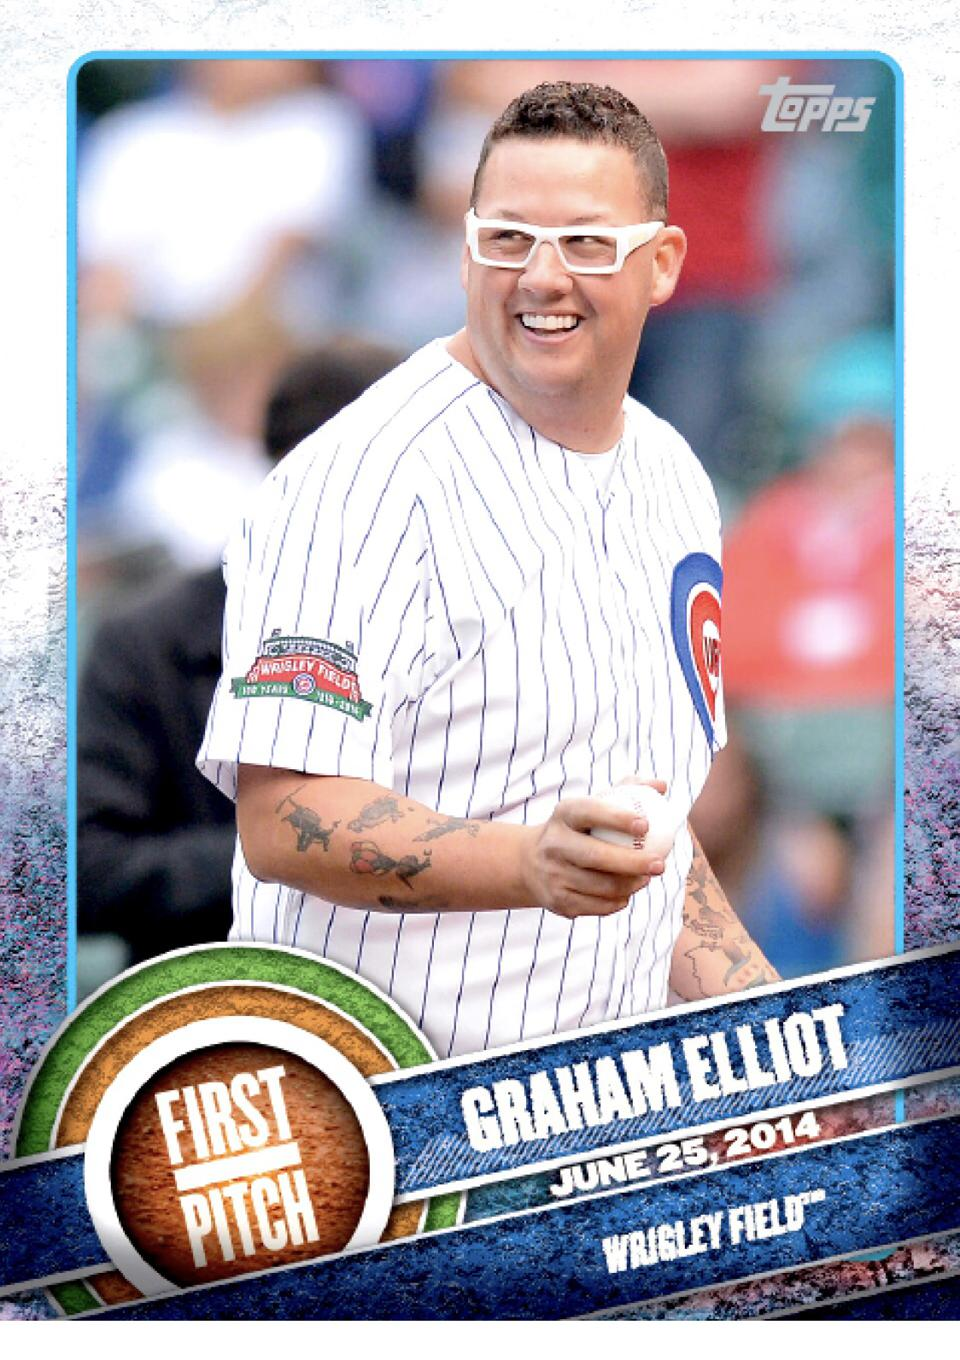 Chef Graham Elliots Search For Ultimate Baseball Card Collection Is